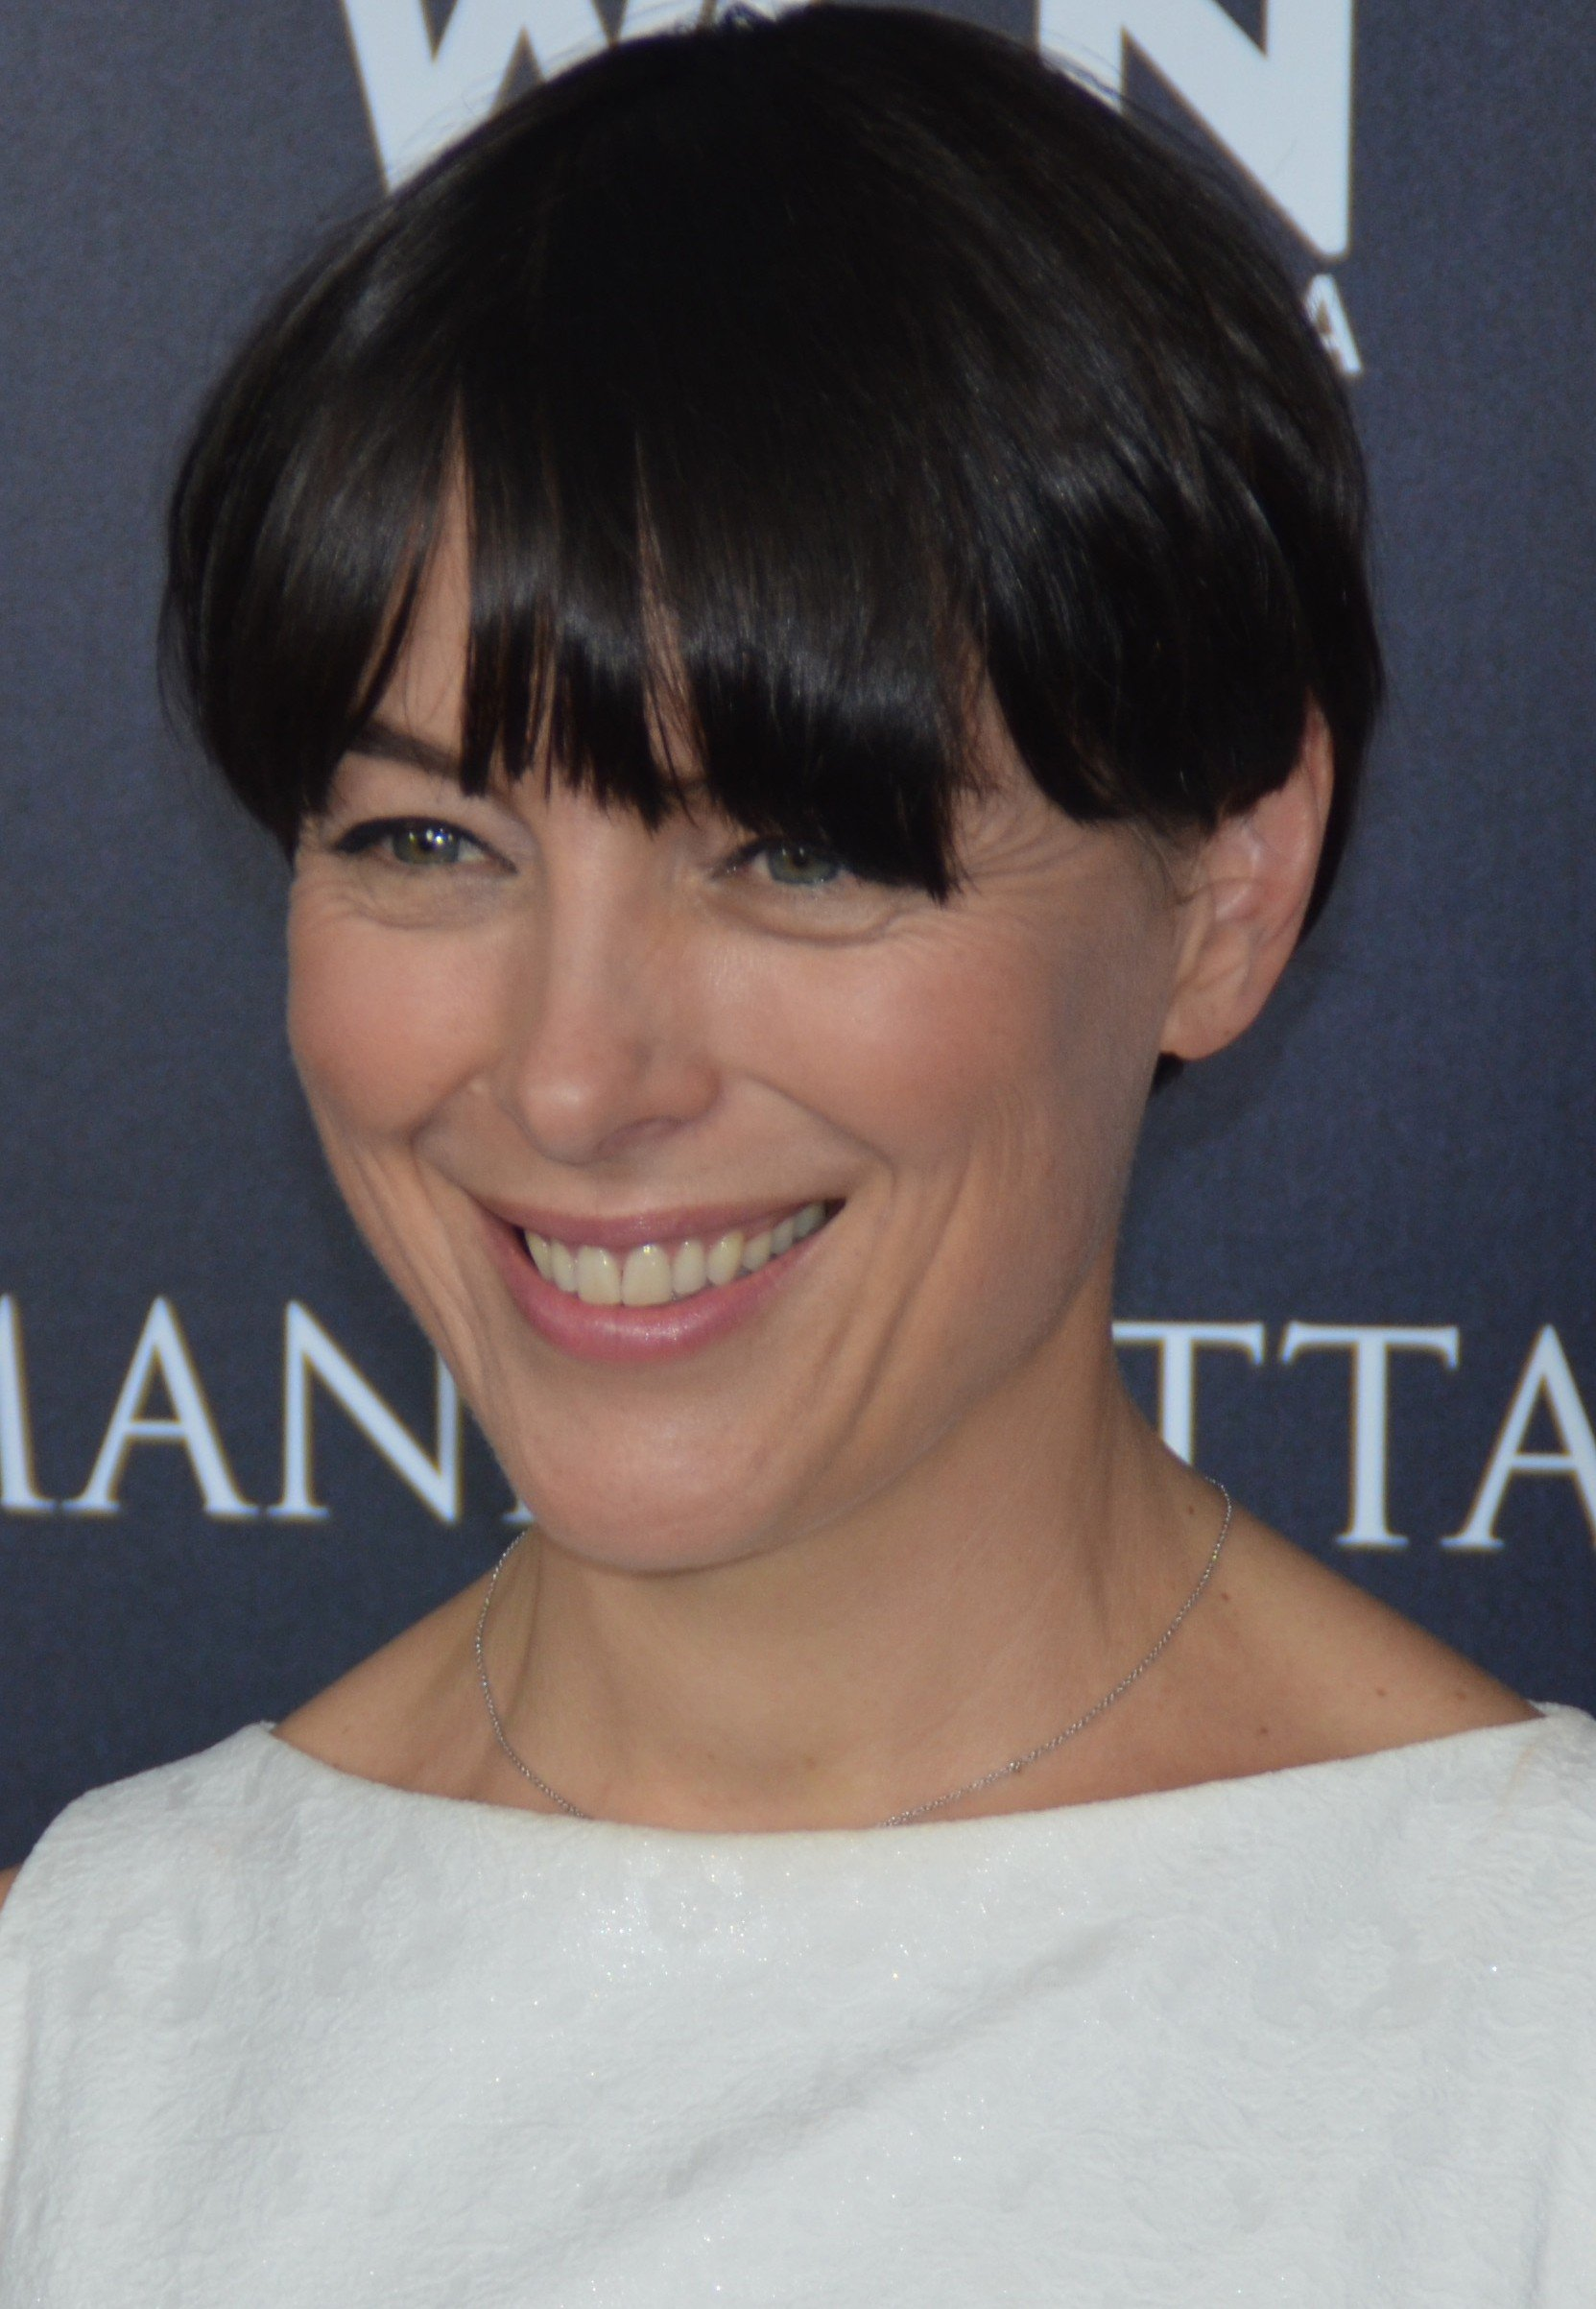 Actress Olivia Williams at the TCA/CTAM press tour event and the special panel event at the Paley Center on July 9, 2014 | Getty Images